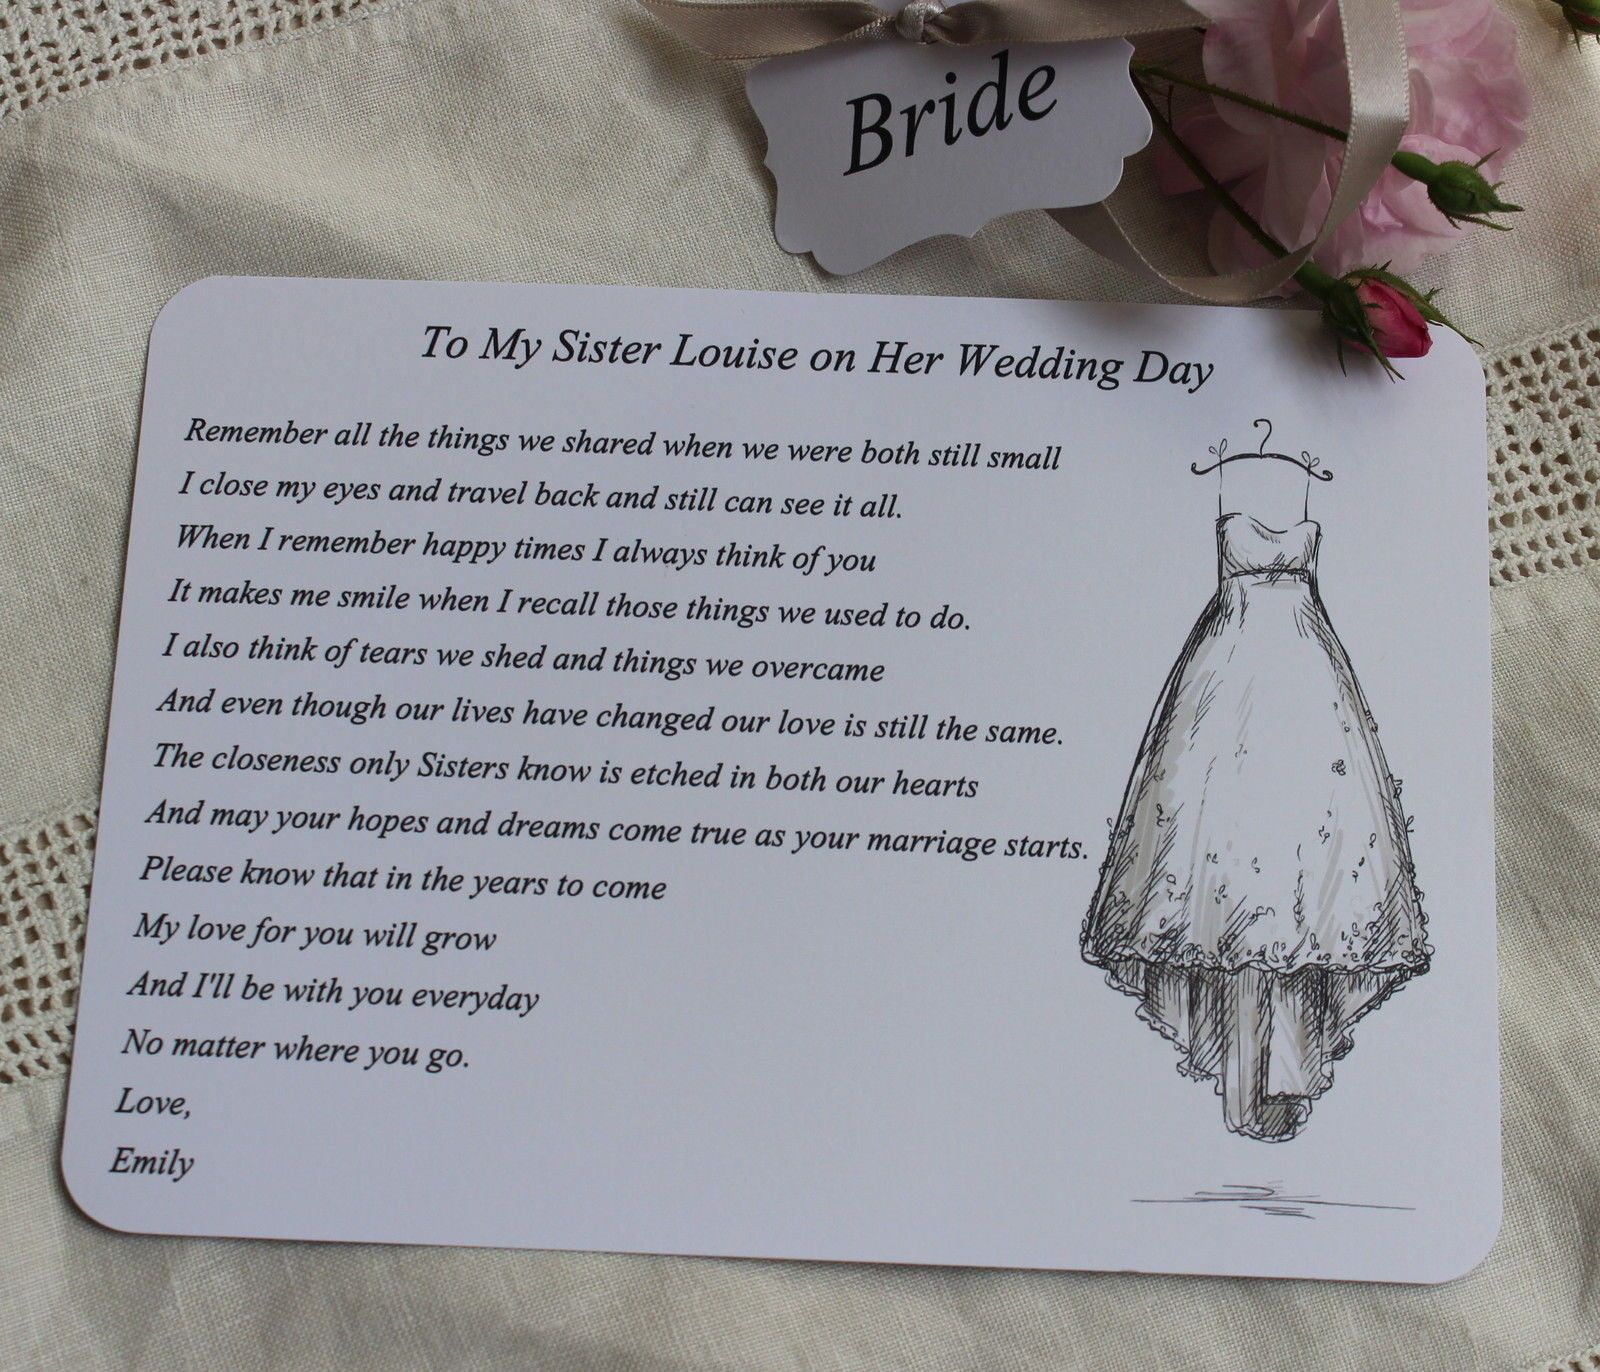 BRIDE Wedding Card For Sister Bride To Be Keepsake Poem Personalised Day